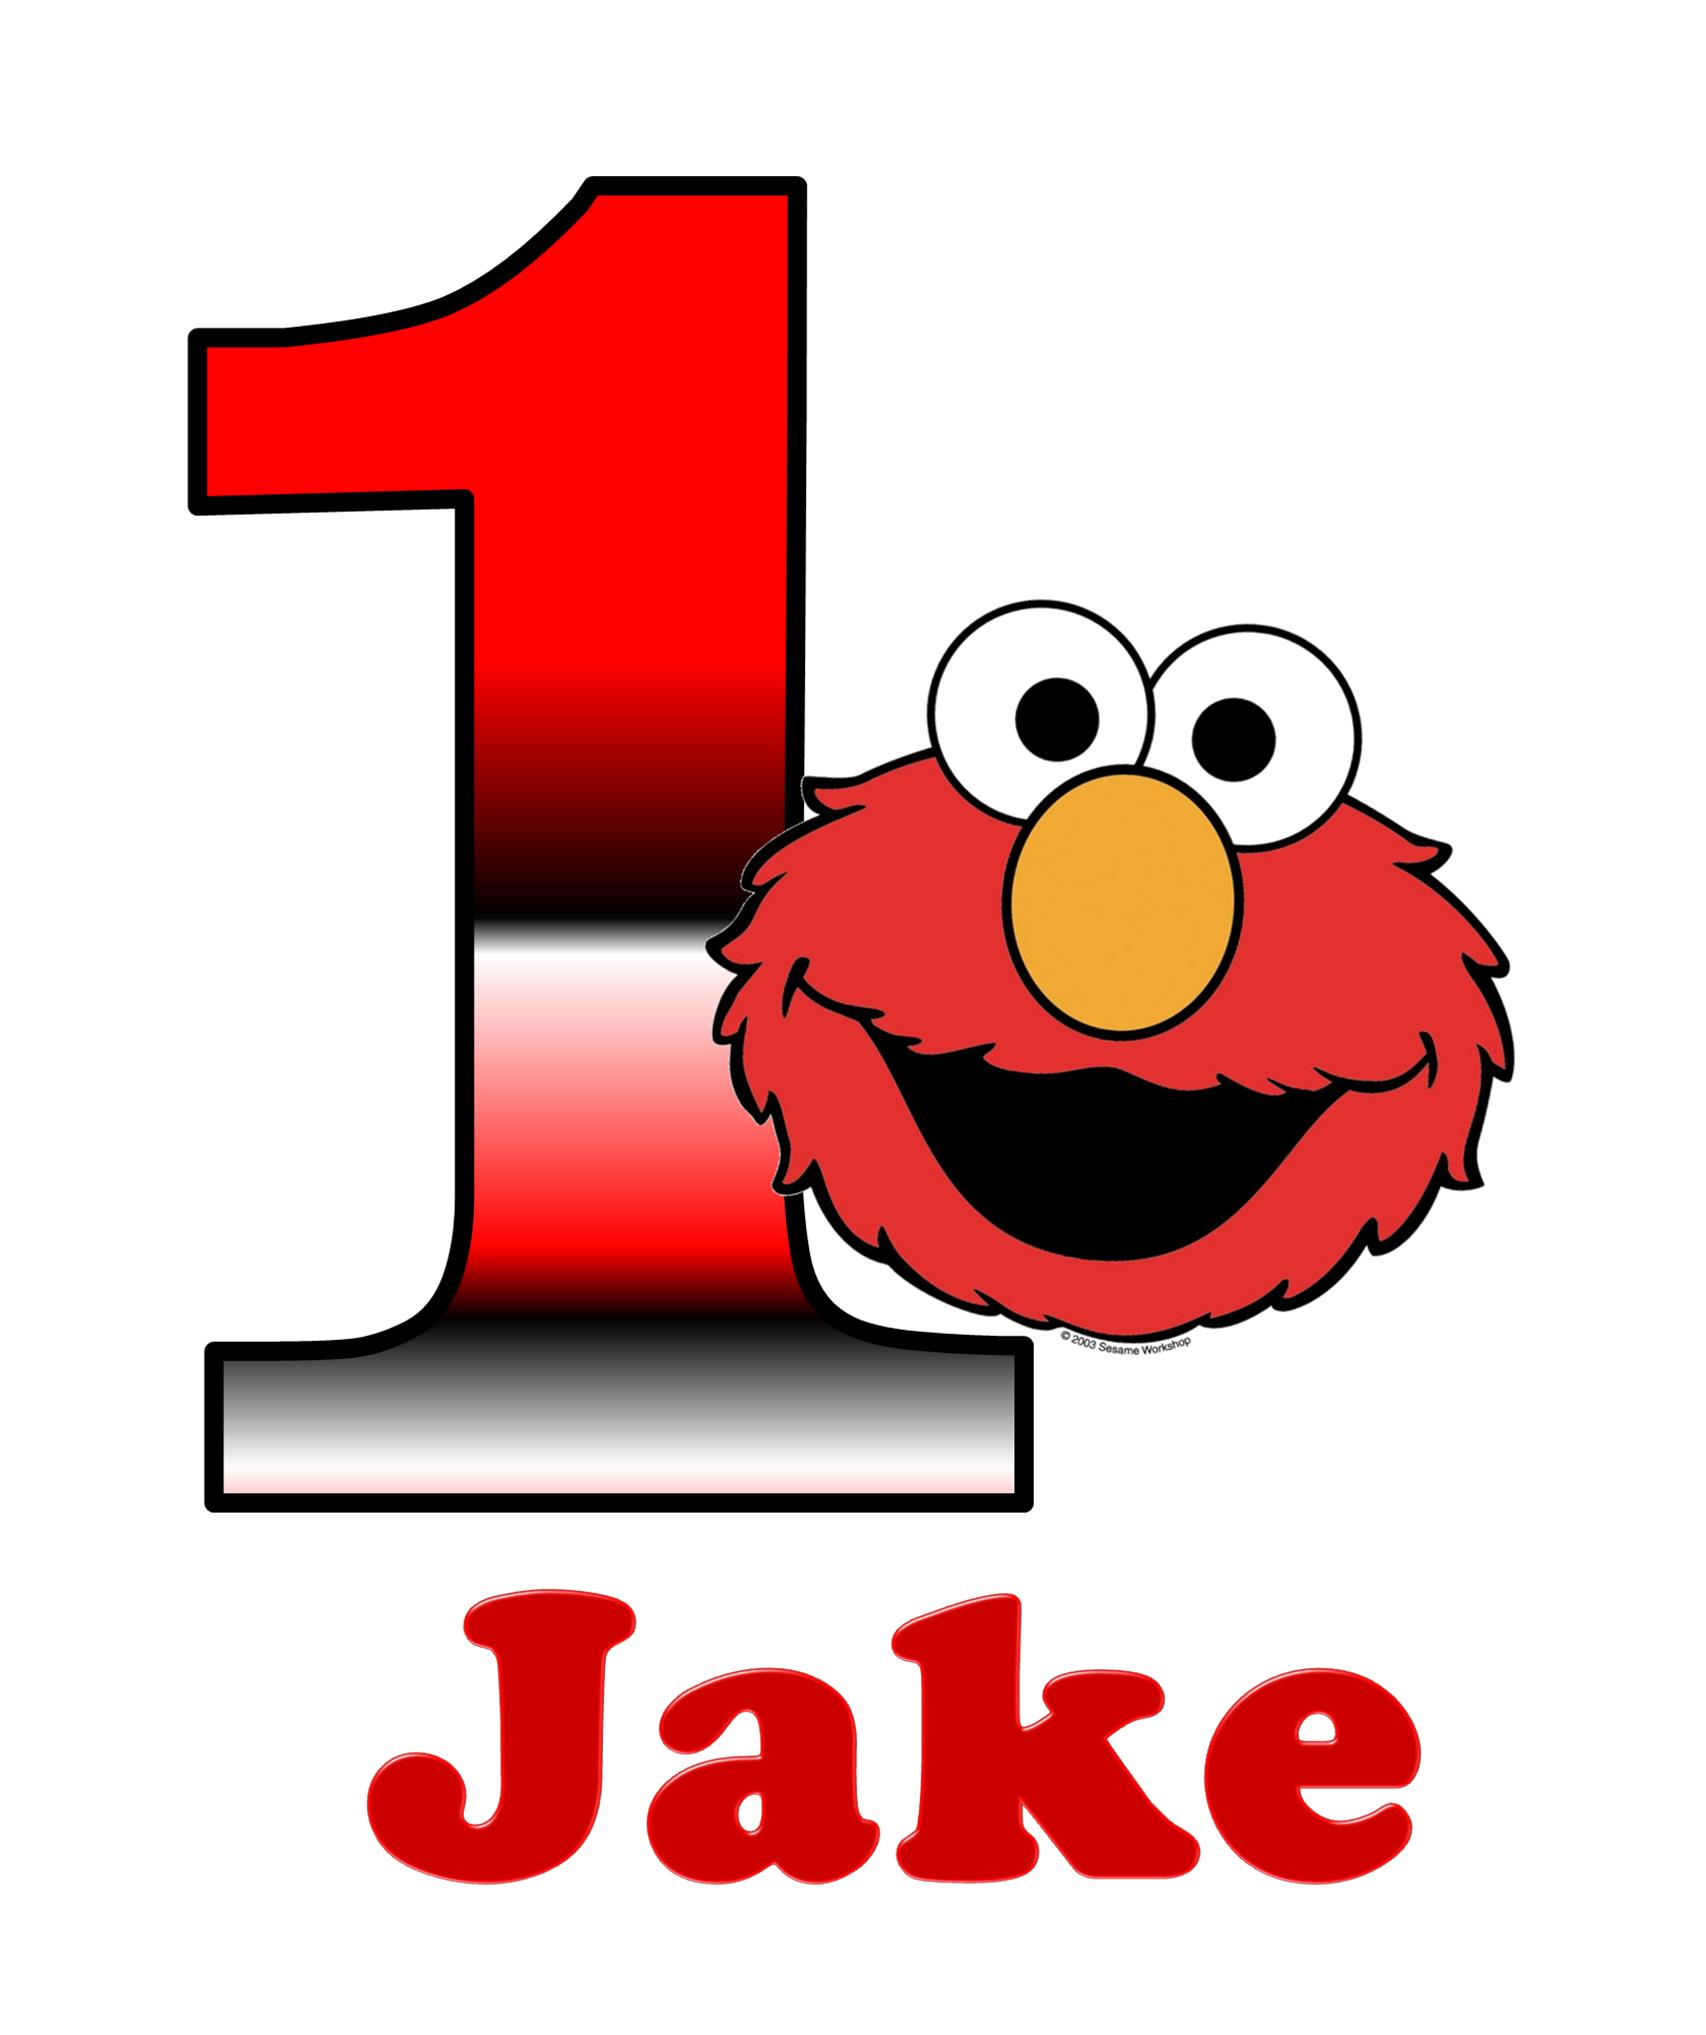 Number 2 birthday clipart for a boy image royalty free library Elmo Number 2 Cliparts - Cliparts Zone image royalty free library